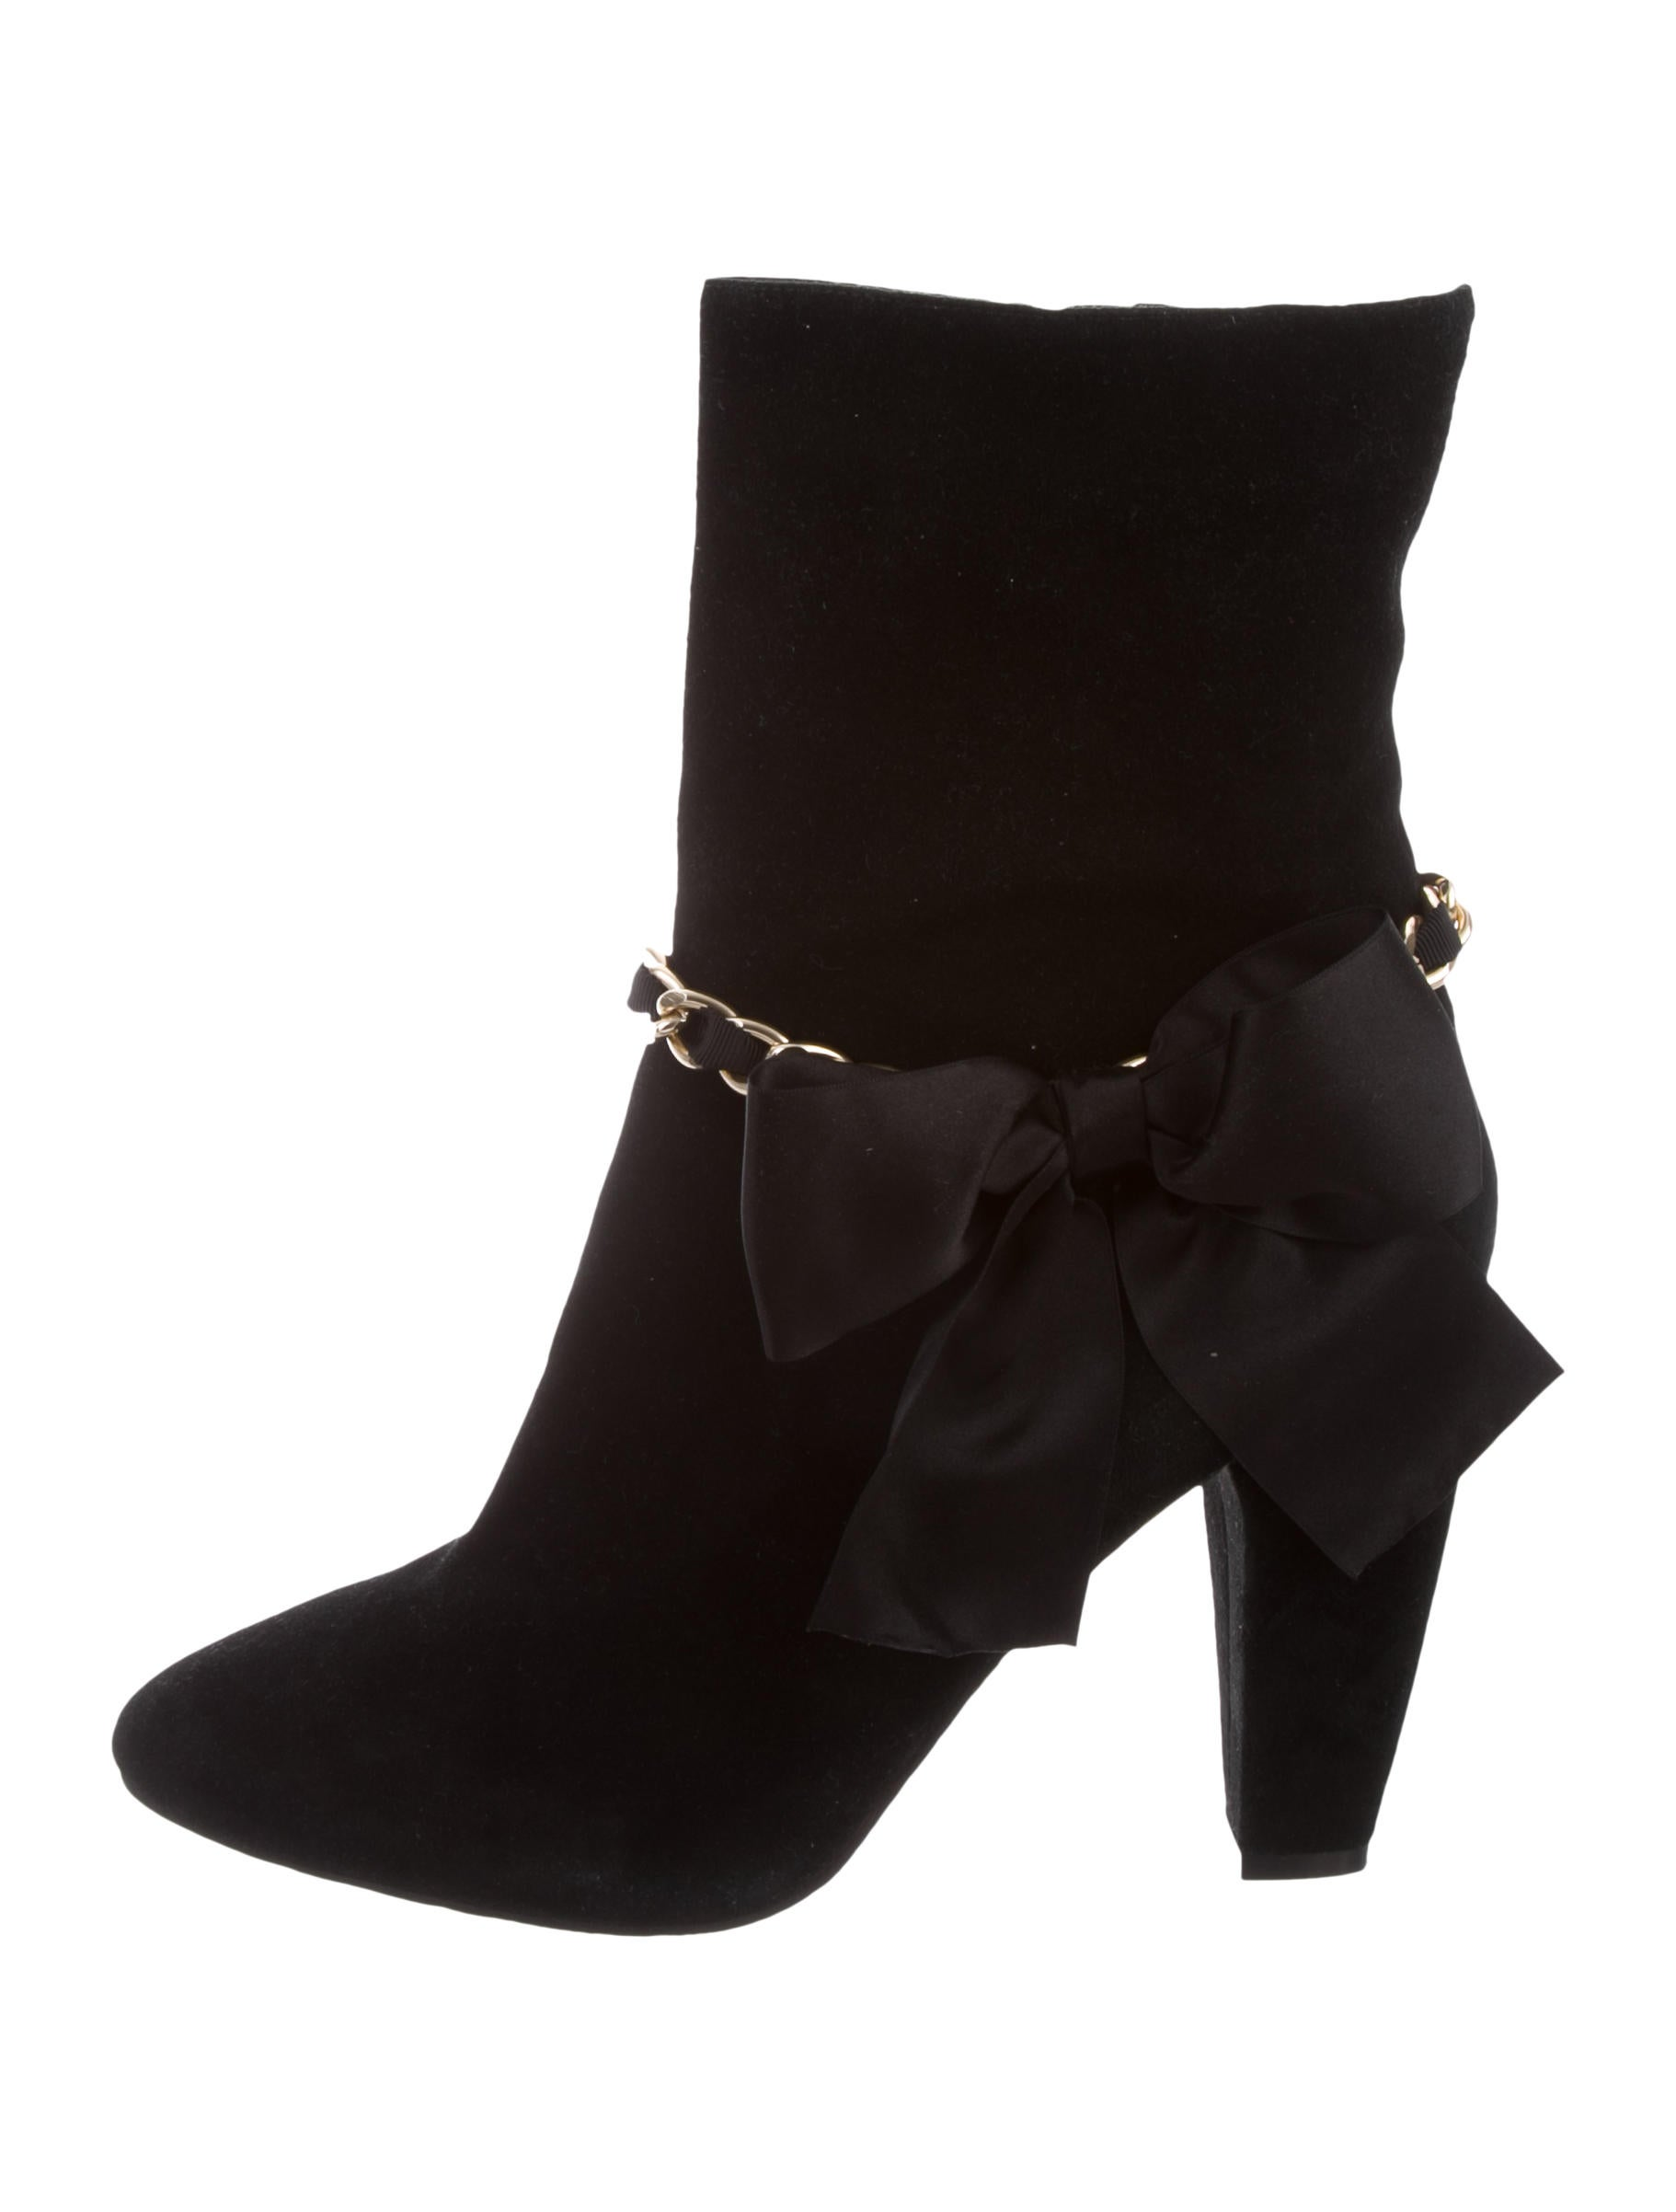 sale supply cheap price top quality Beverly Feldman Bow-Accented Mid-Calf Boots outlet 100% original lHhxsiB